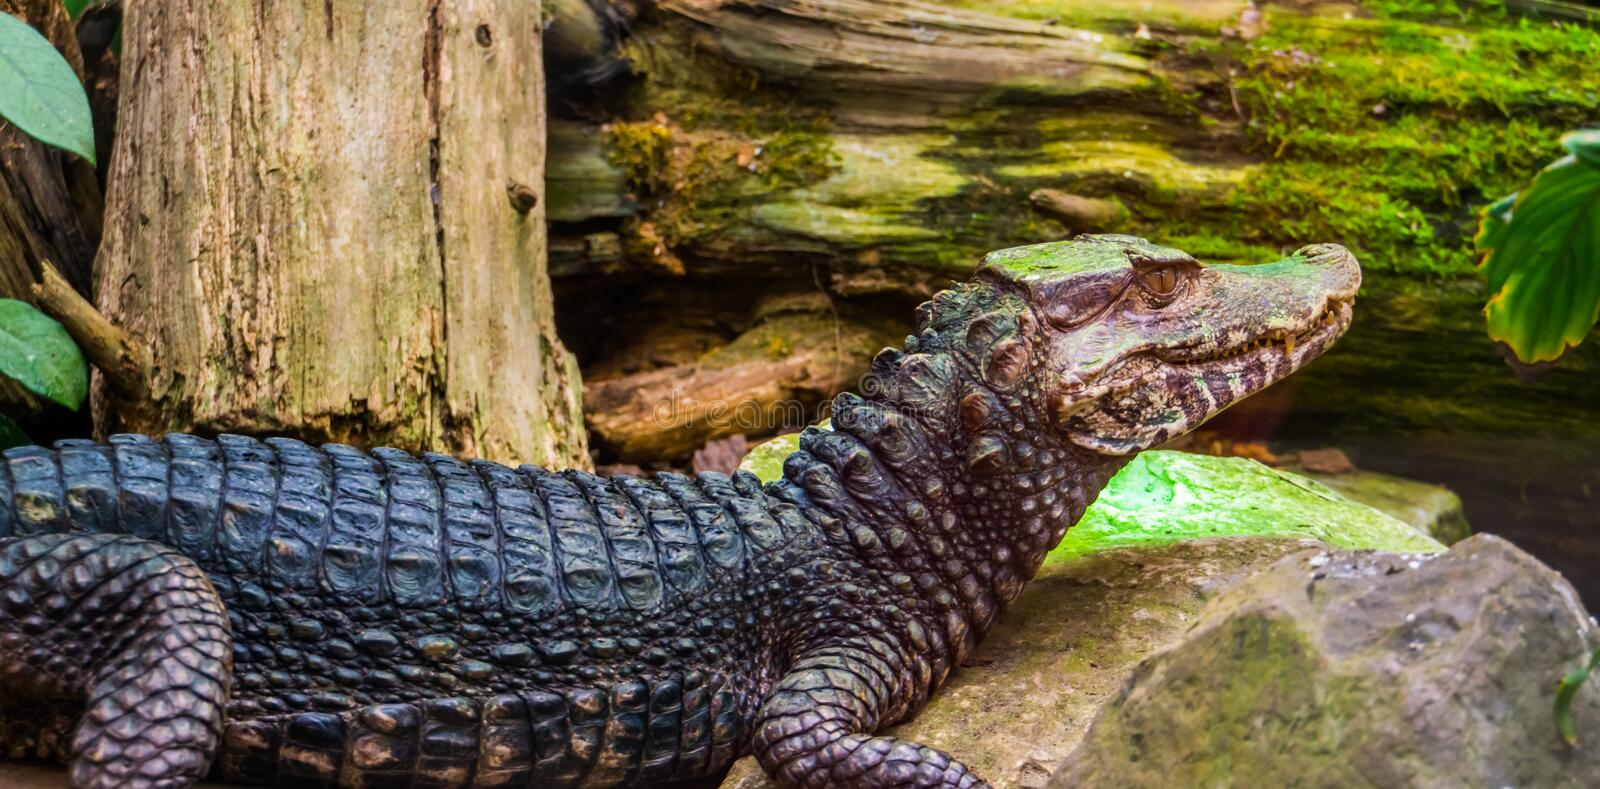 Curviers dwarf caiman crocodile sitting at the water side, popular zoo animal and pet in herpetoculture, Reptile specie from. A curviers dwarf caiman crocodile royalty free stock image